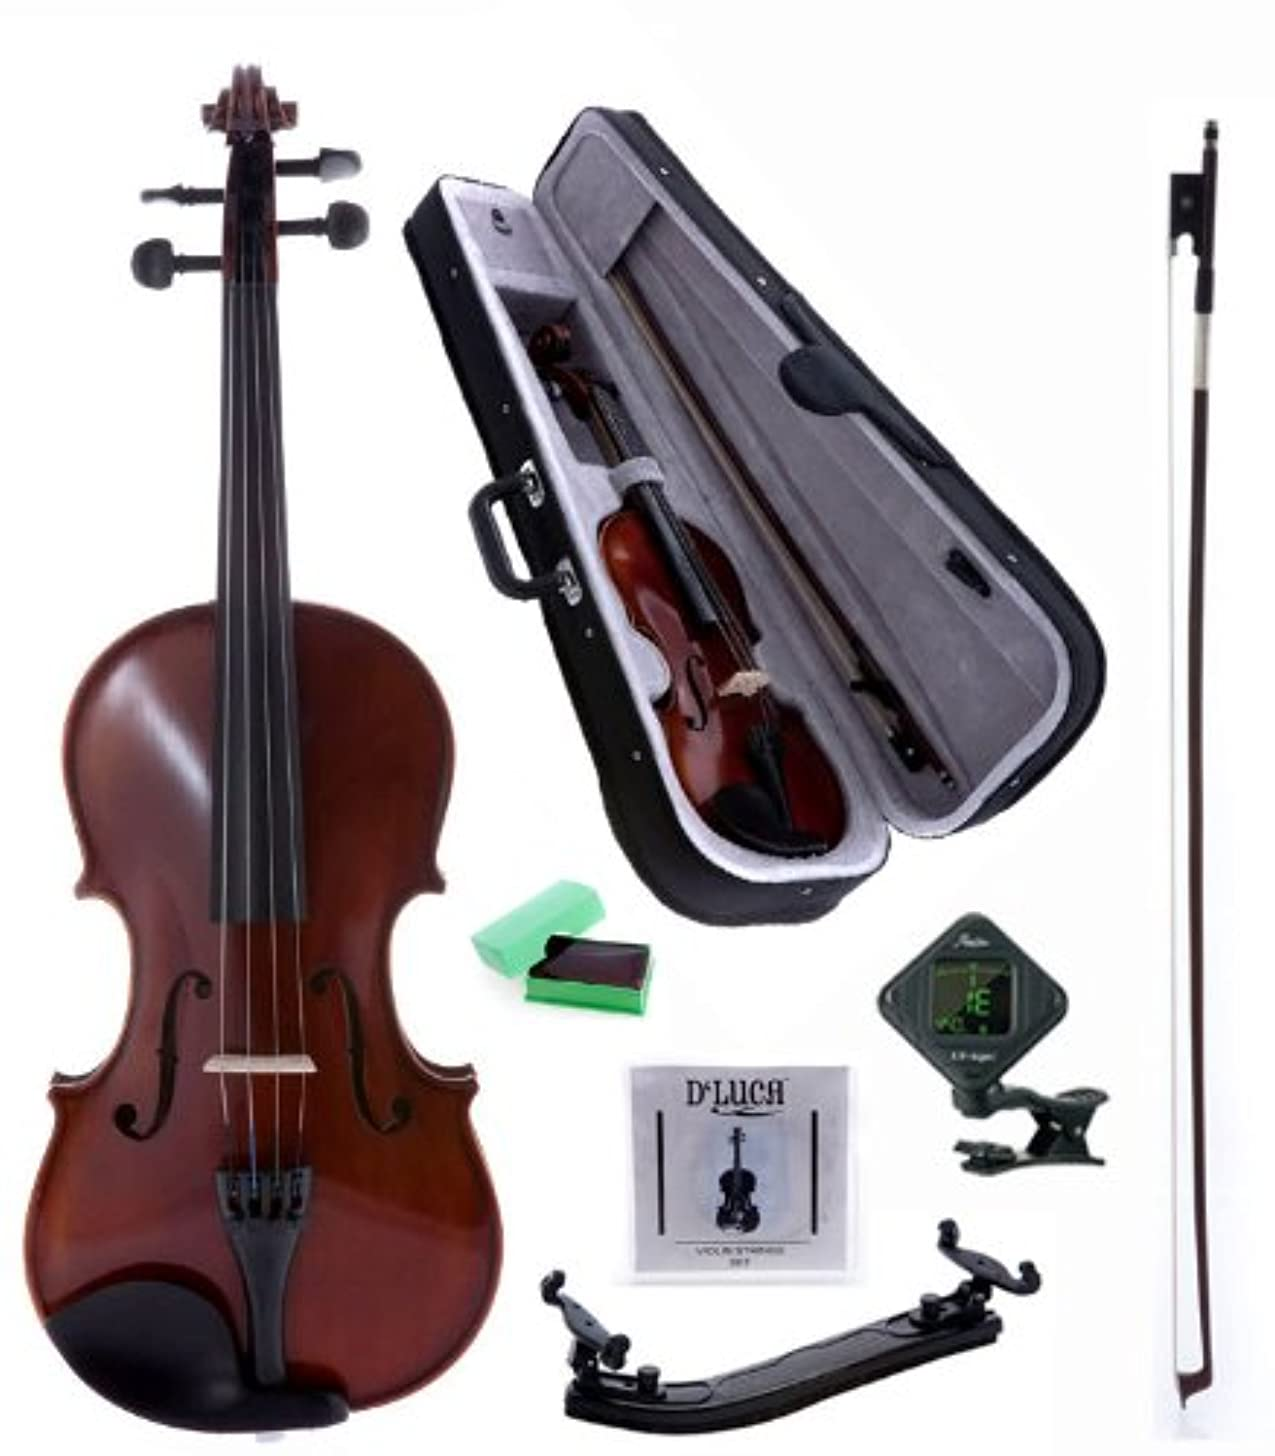 D'Luca POD01 Orchestral Series Violin Outfit - 4/4